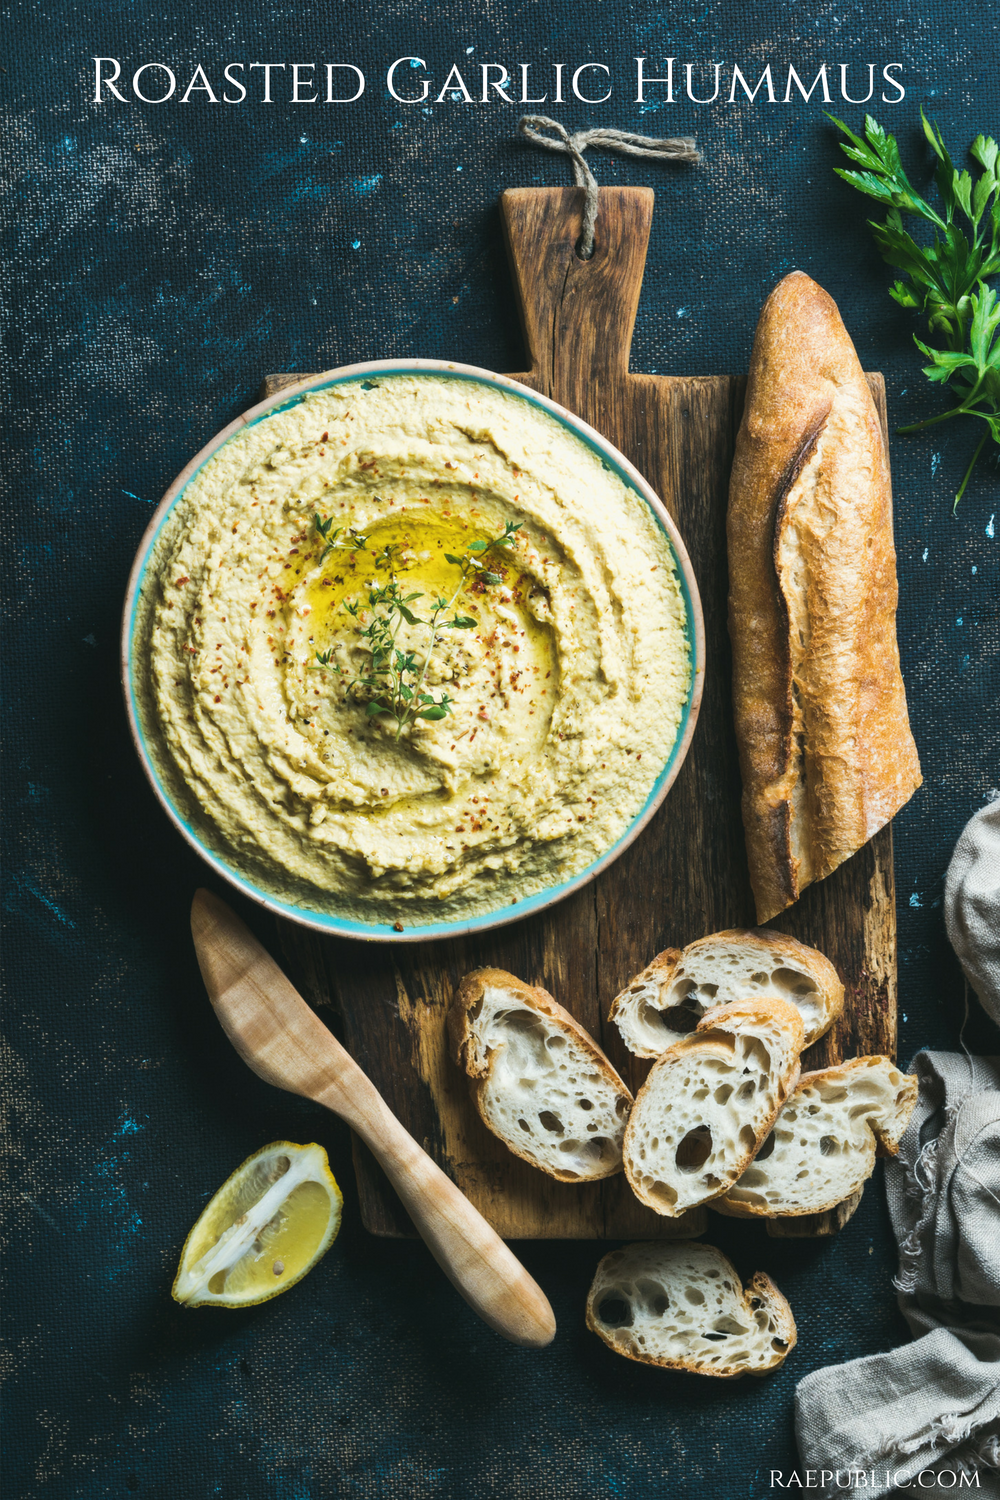 Easy roasted garlic hummus that is naturally gluten free and dairy free.